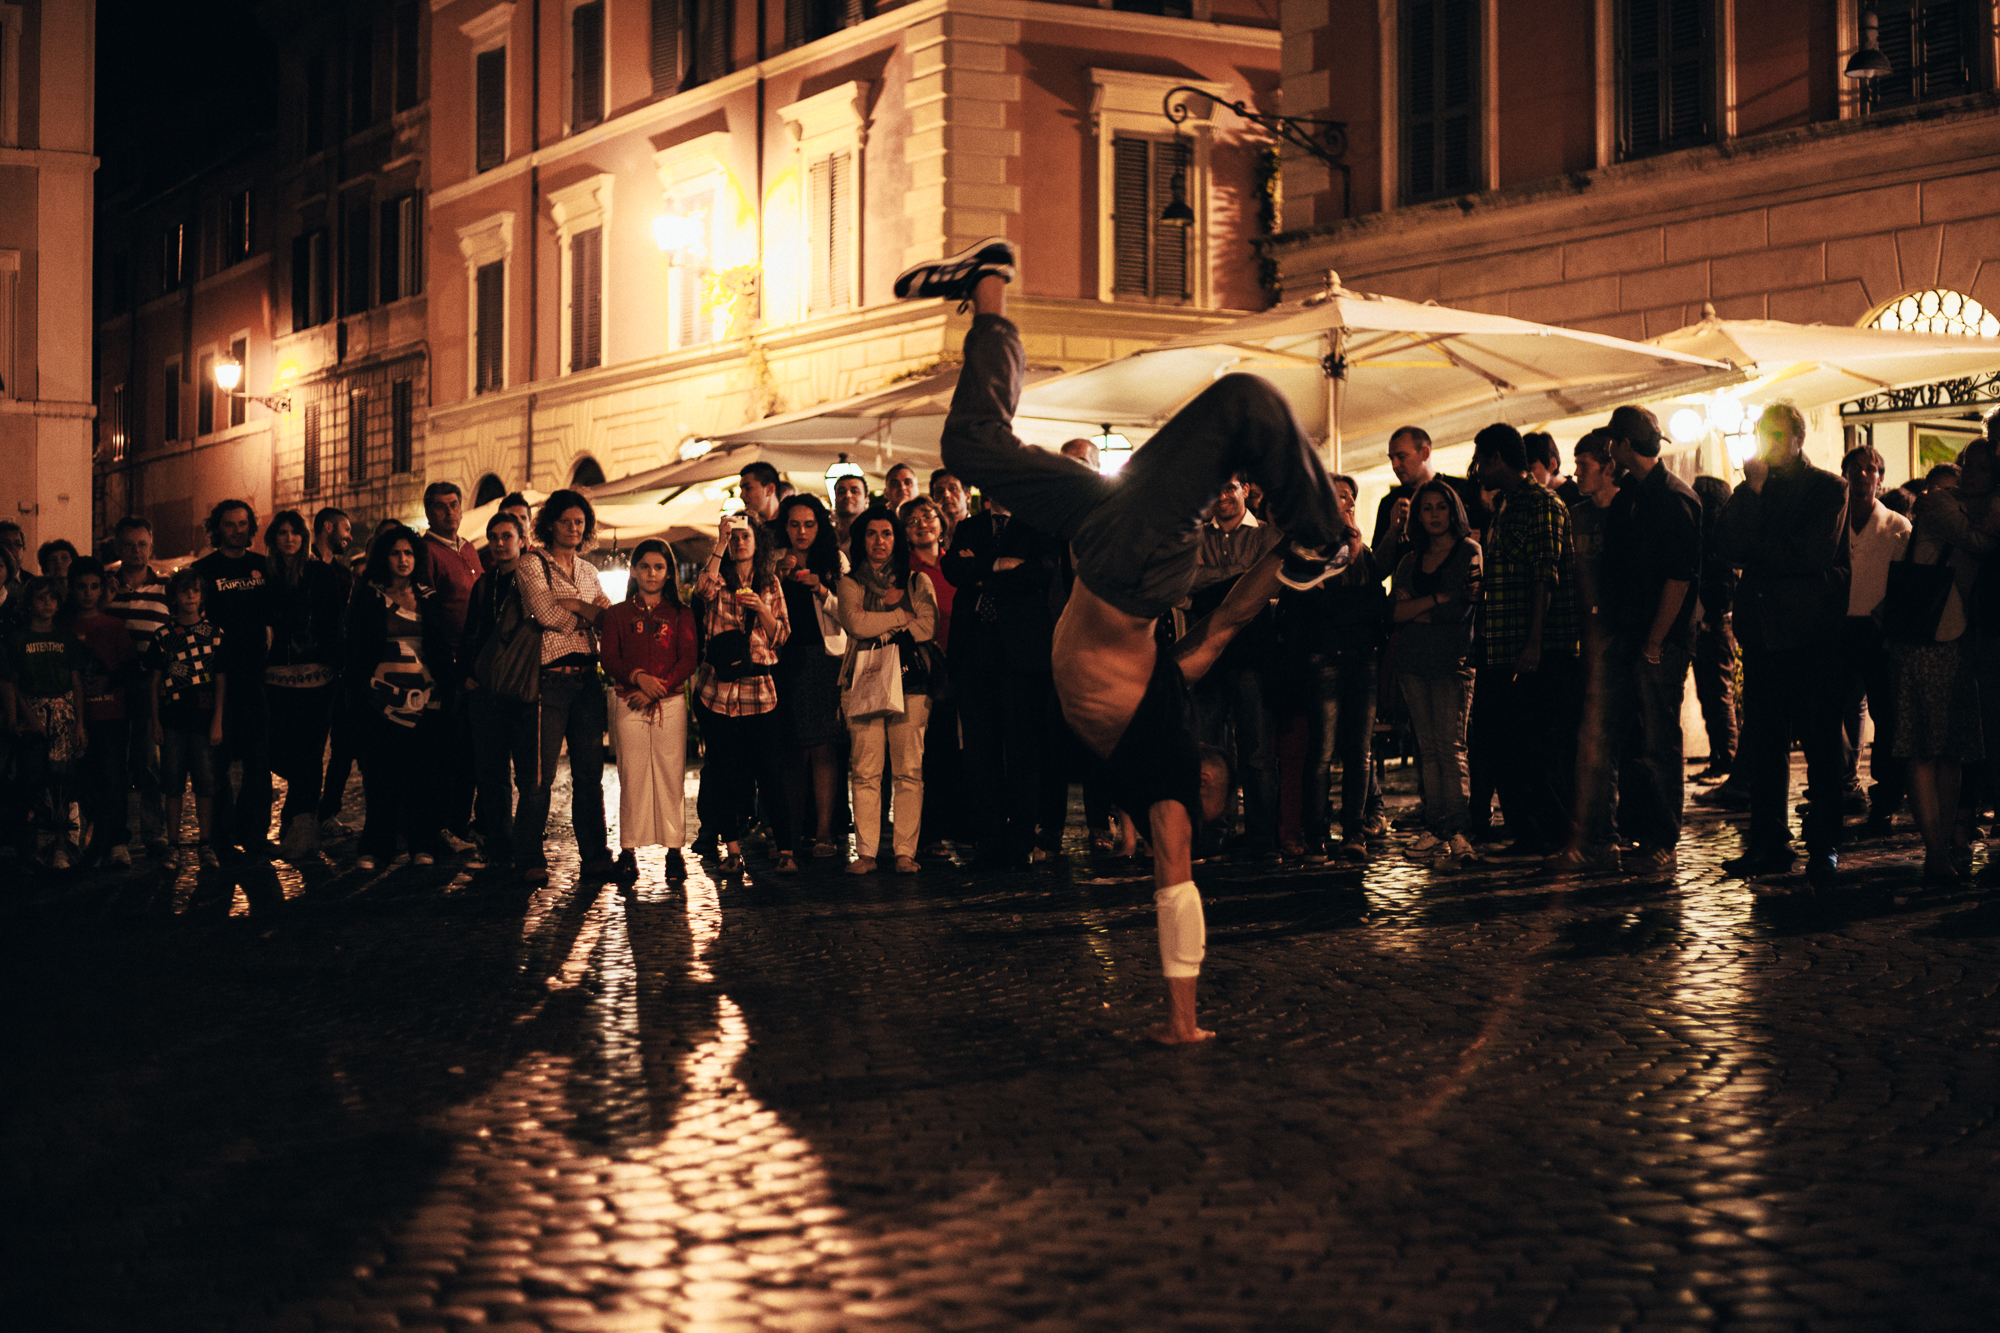 street performers, piazza santa maria in trastavere. by leonie wise